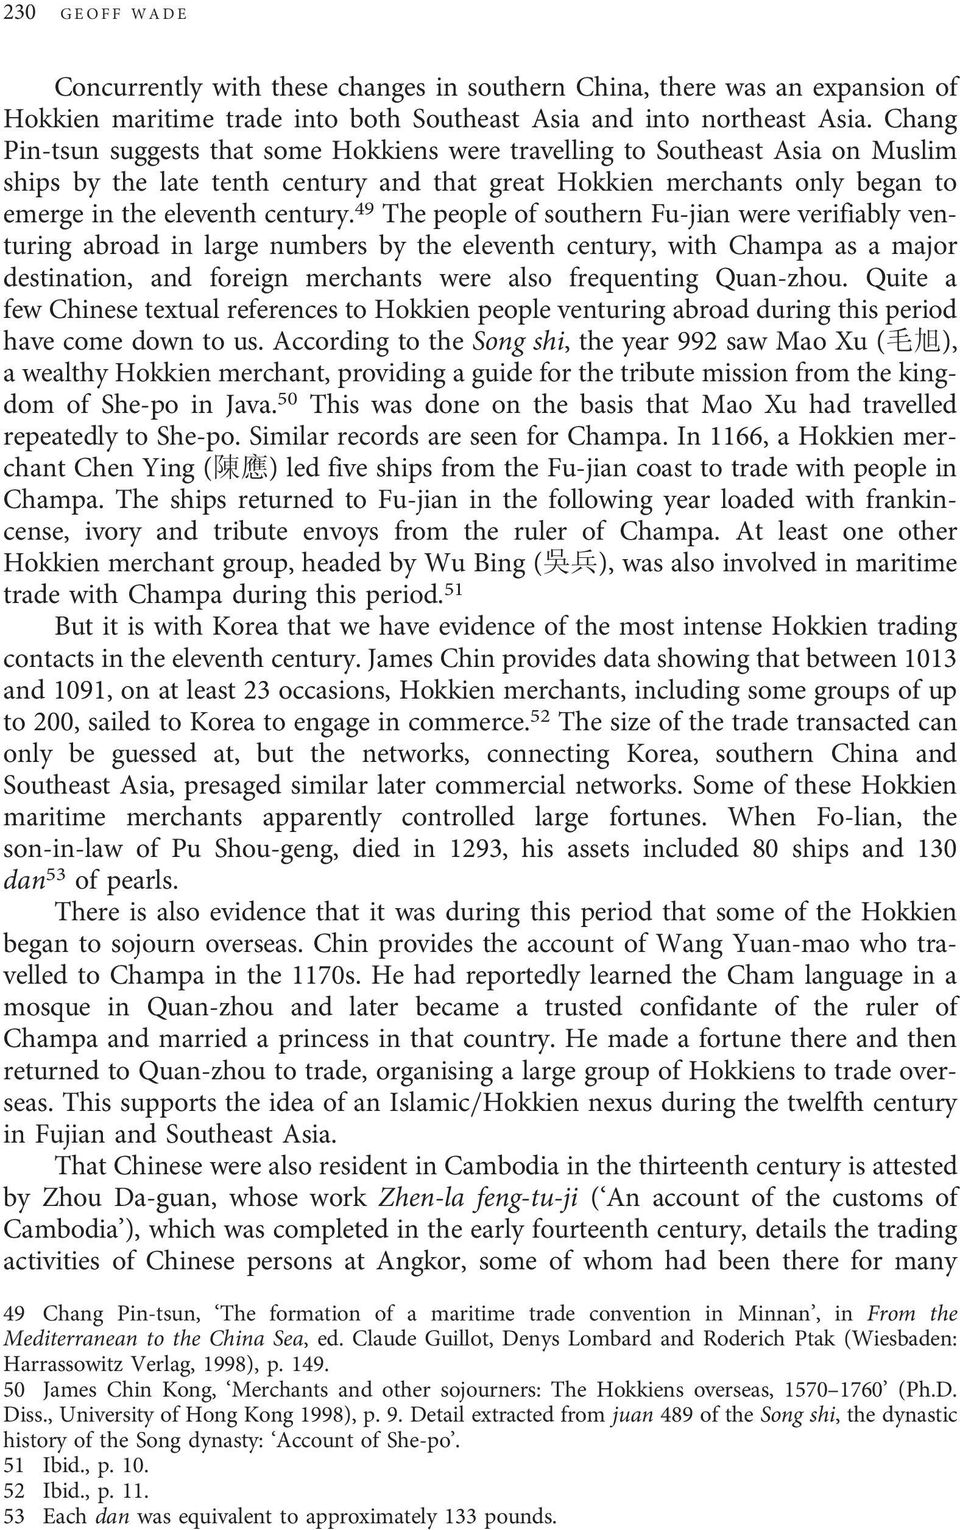 49 The people of southern Fu-jian were verifiably venturing abroad in large numbers by the eleventh century, with Champa as a major destination, and foreign merchants were also frequenting Quan-zhou.